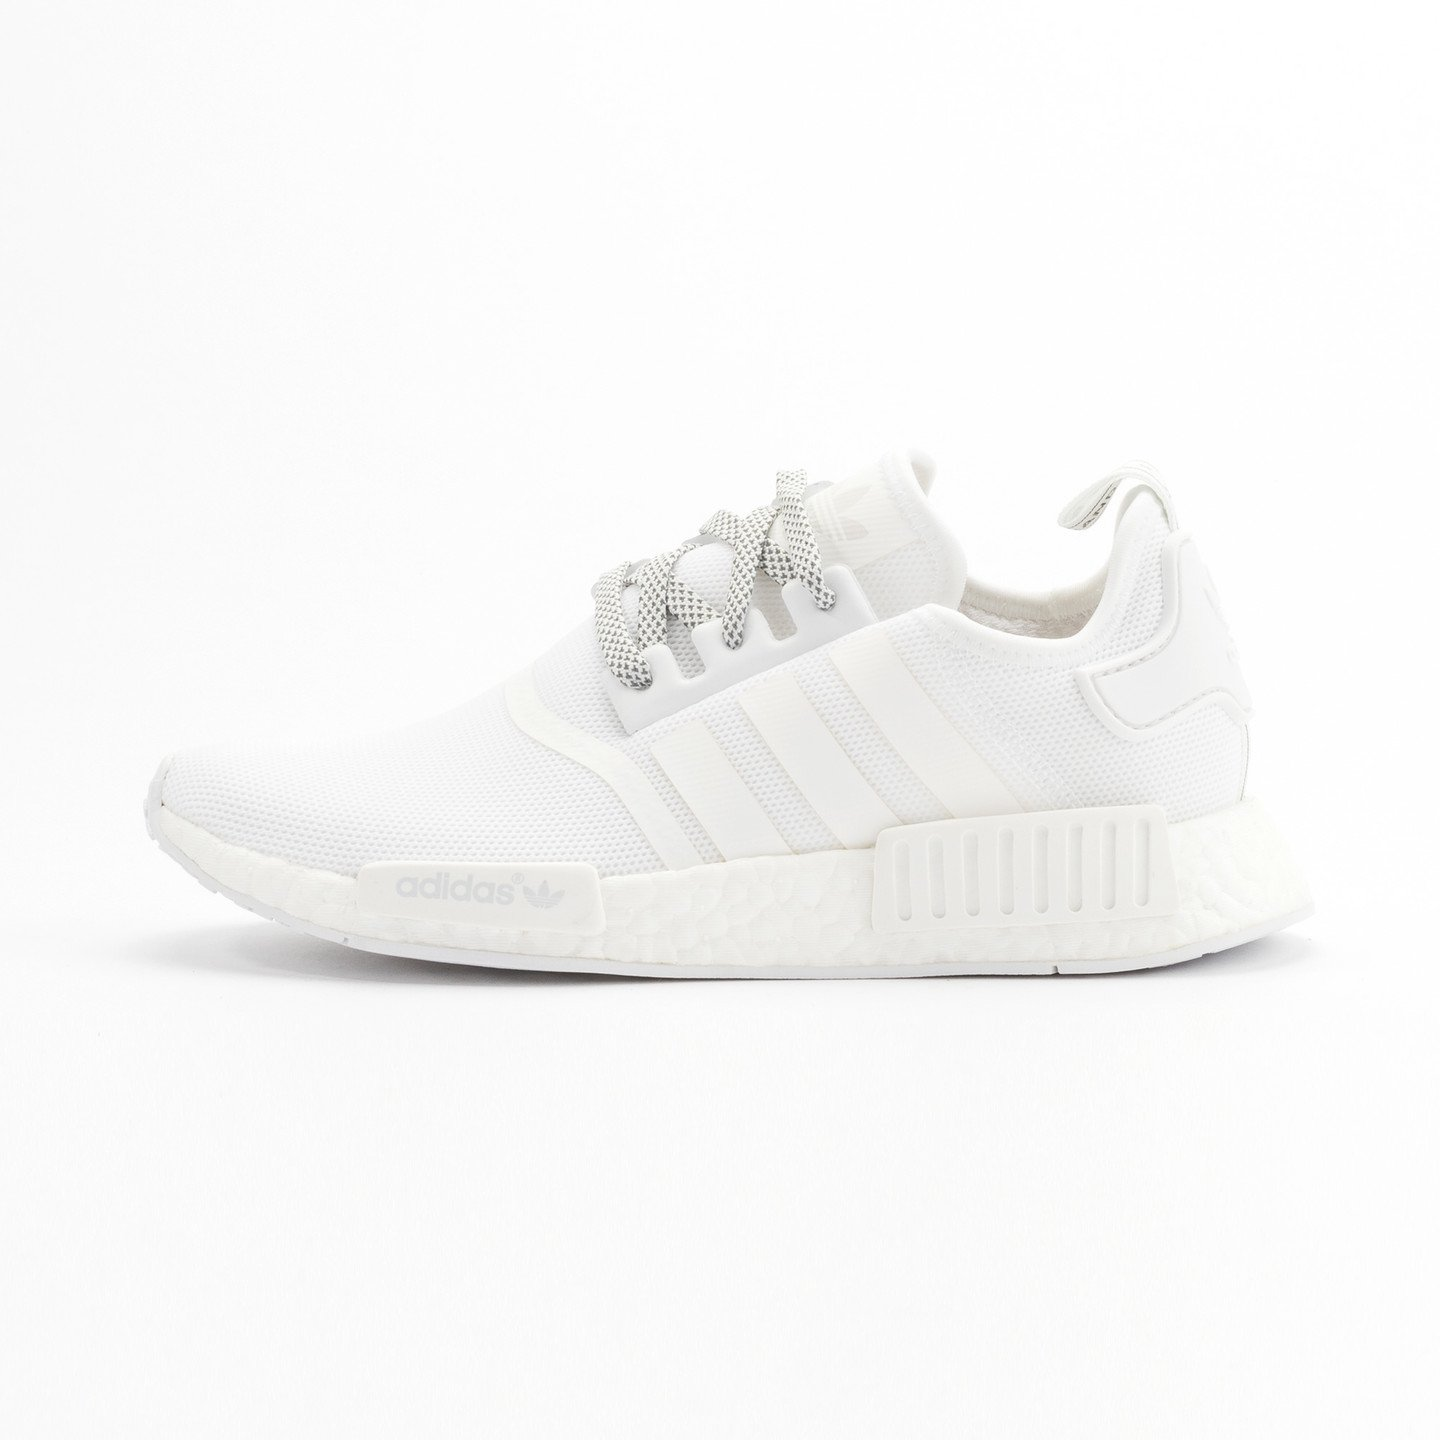 Adidas NMD R1 Runner Triple White S31506-44